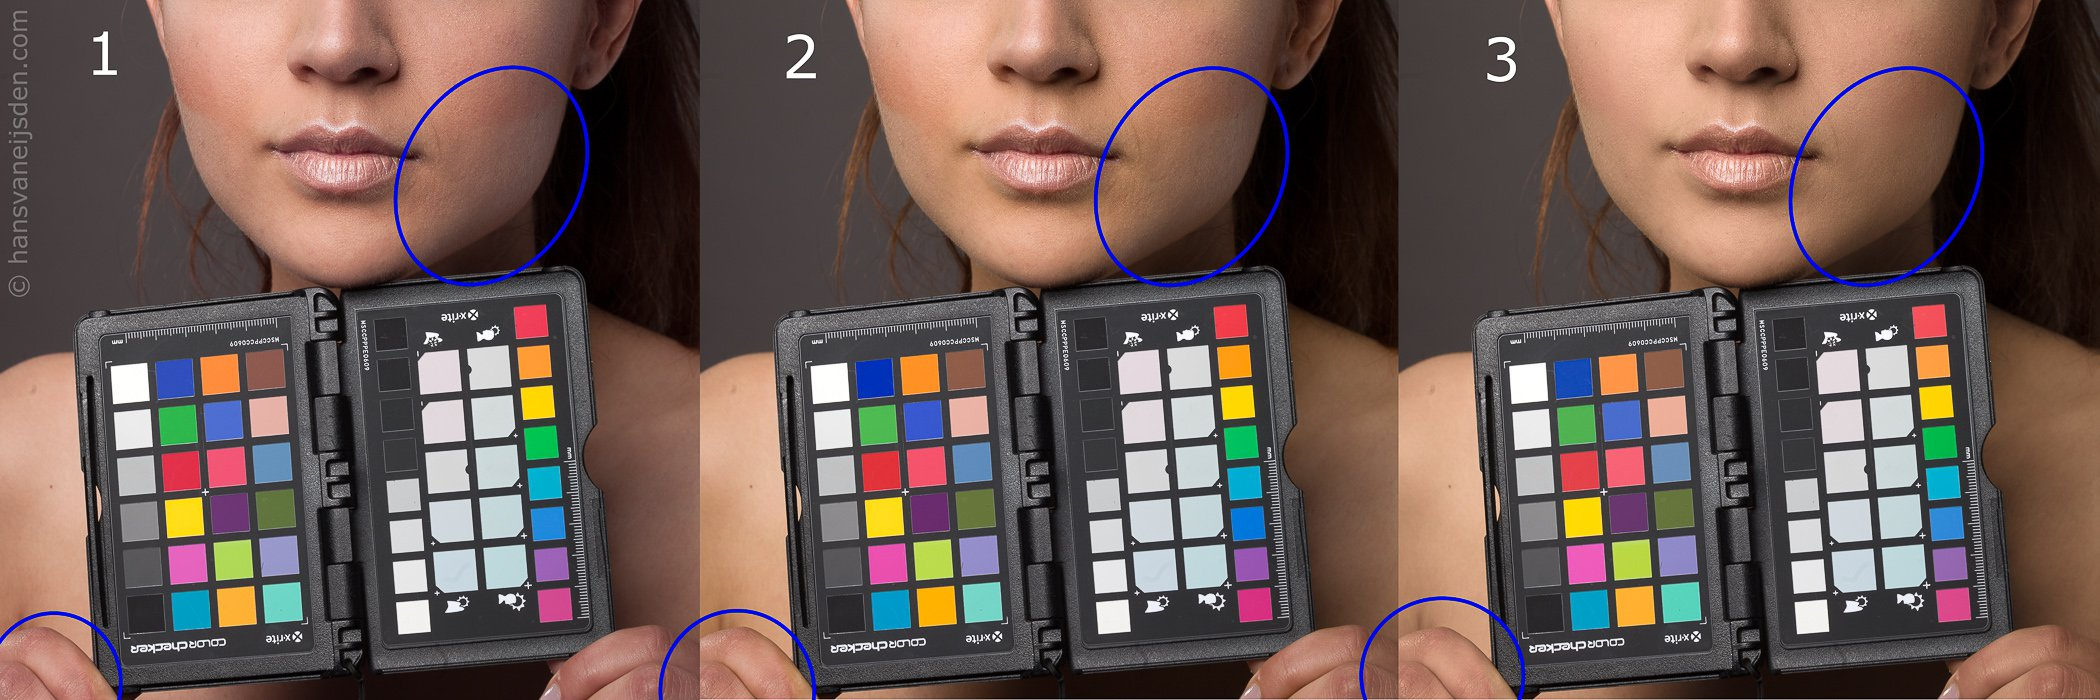 ColorChecker profile skin comparison 2: studio setting